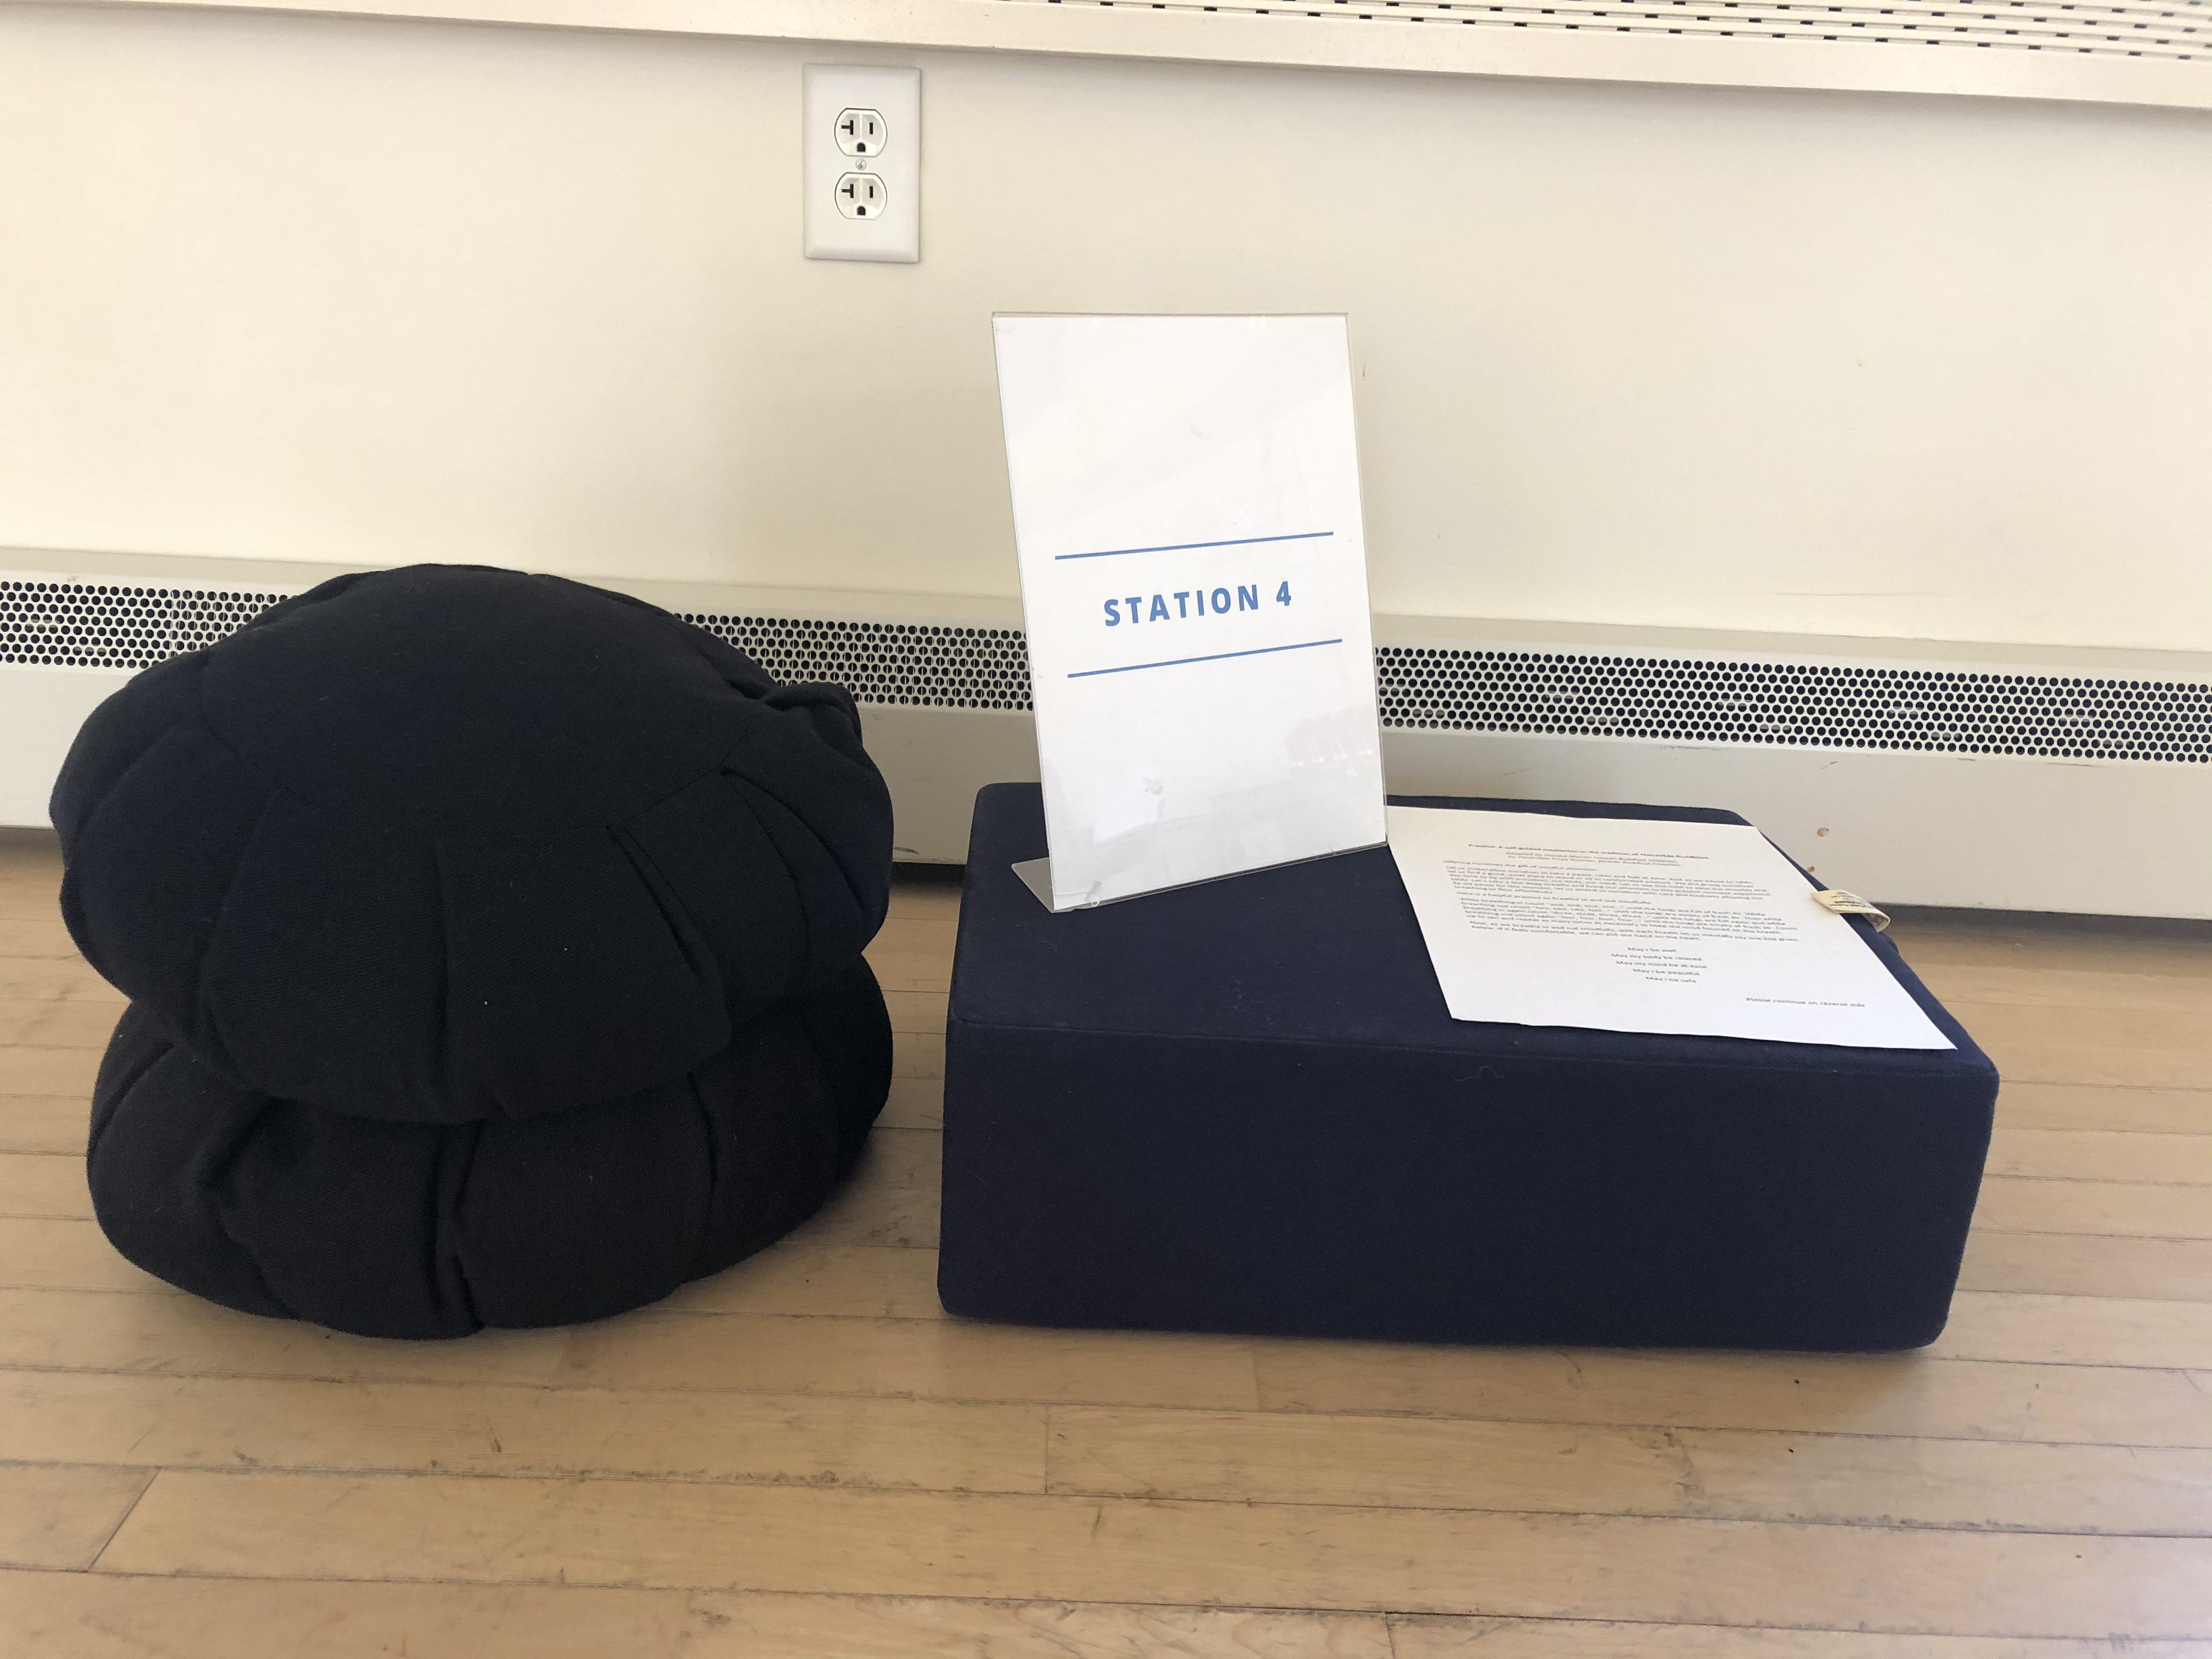 Meditation cushions with Station 3 sign